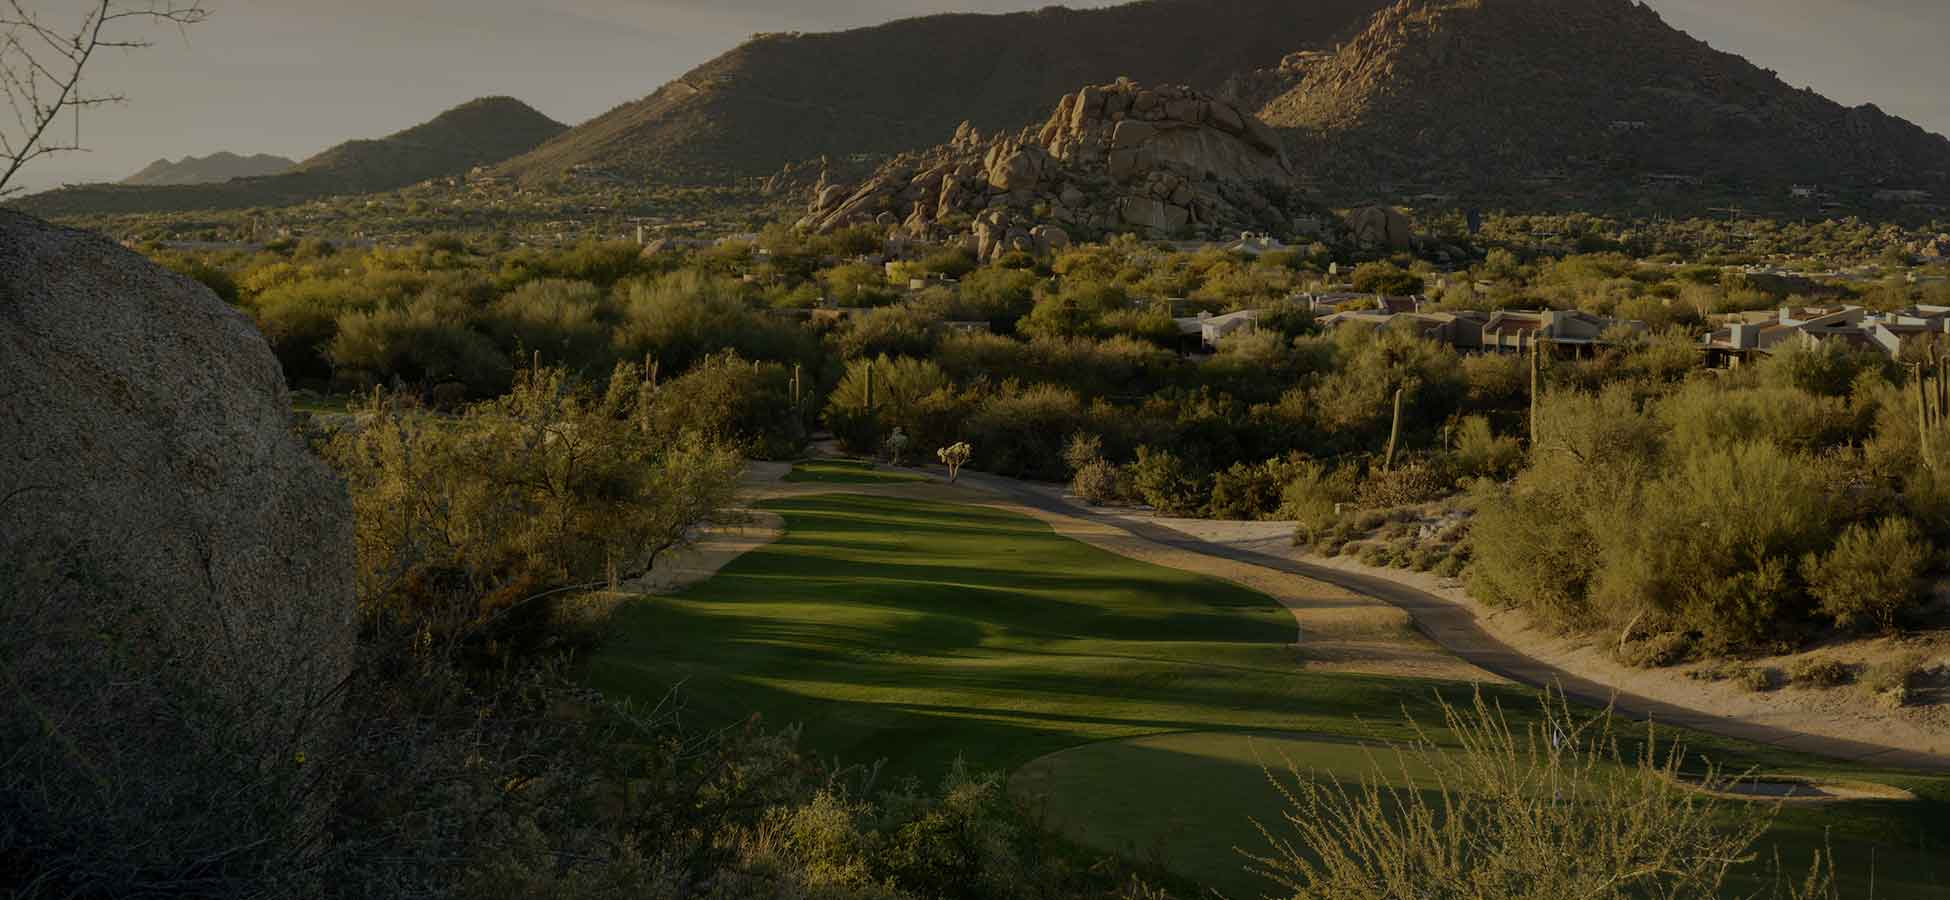 Commercial-Landscaping-Services-Arizona